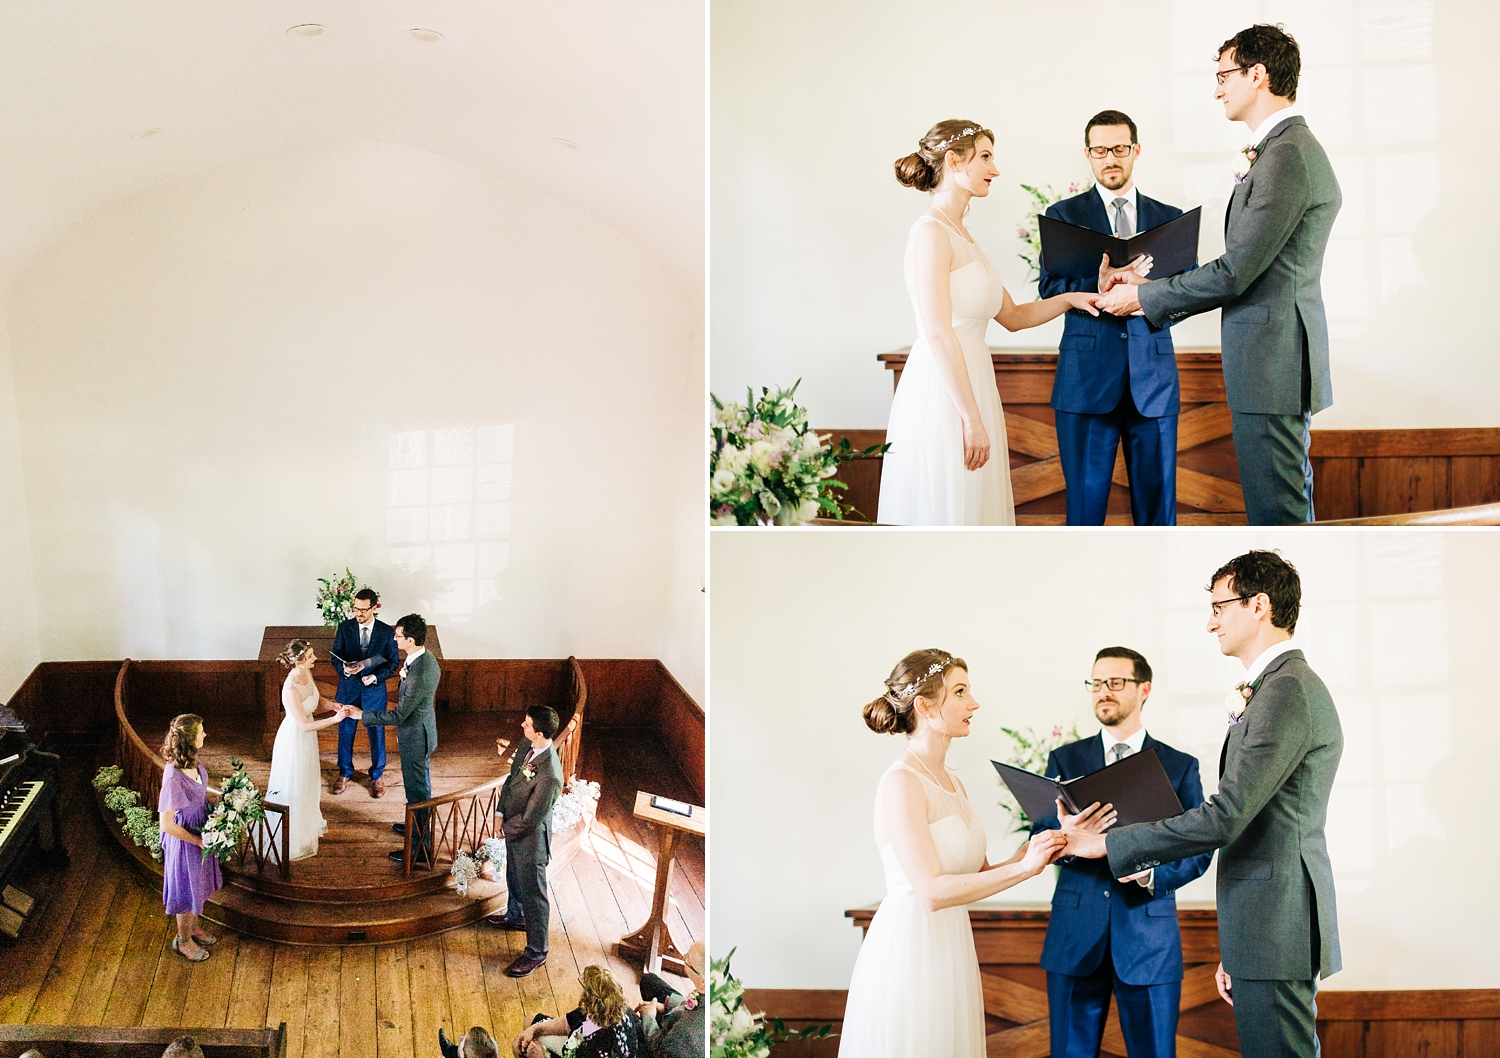 wedding ceremony in raleigh's st. mark's chapel in mordecai park